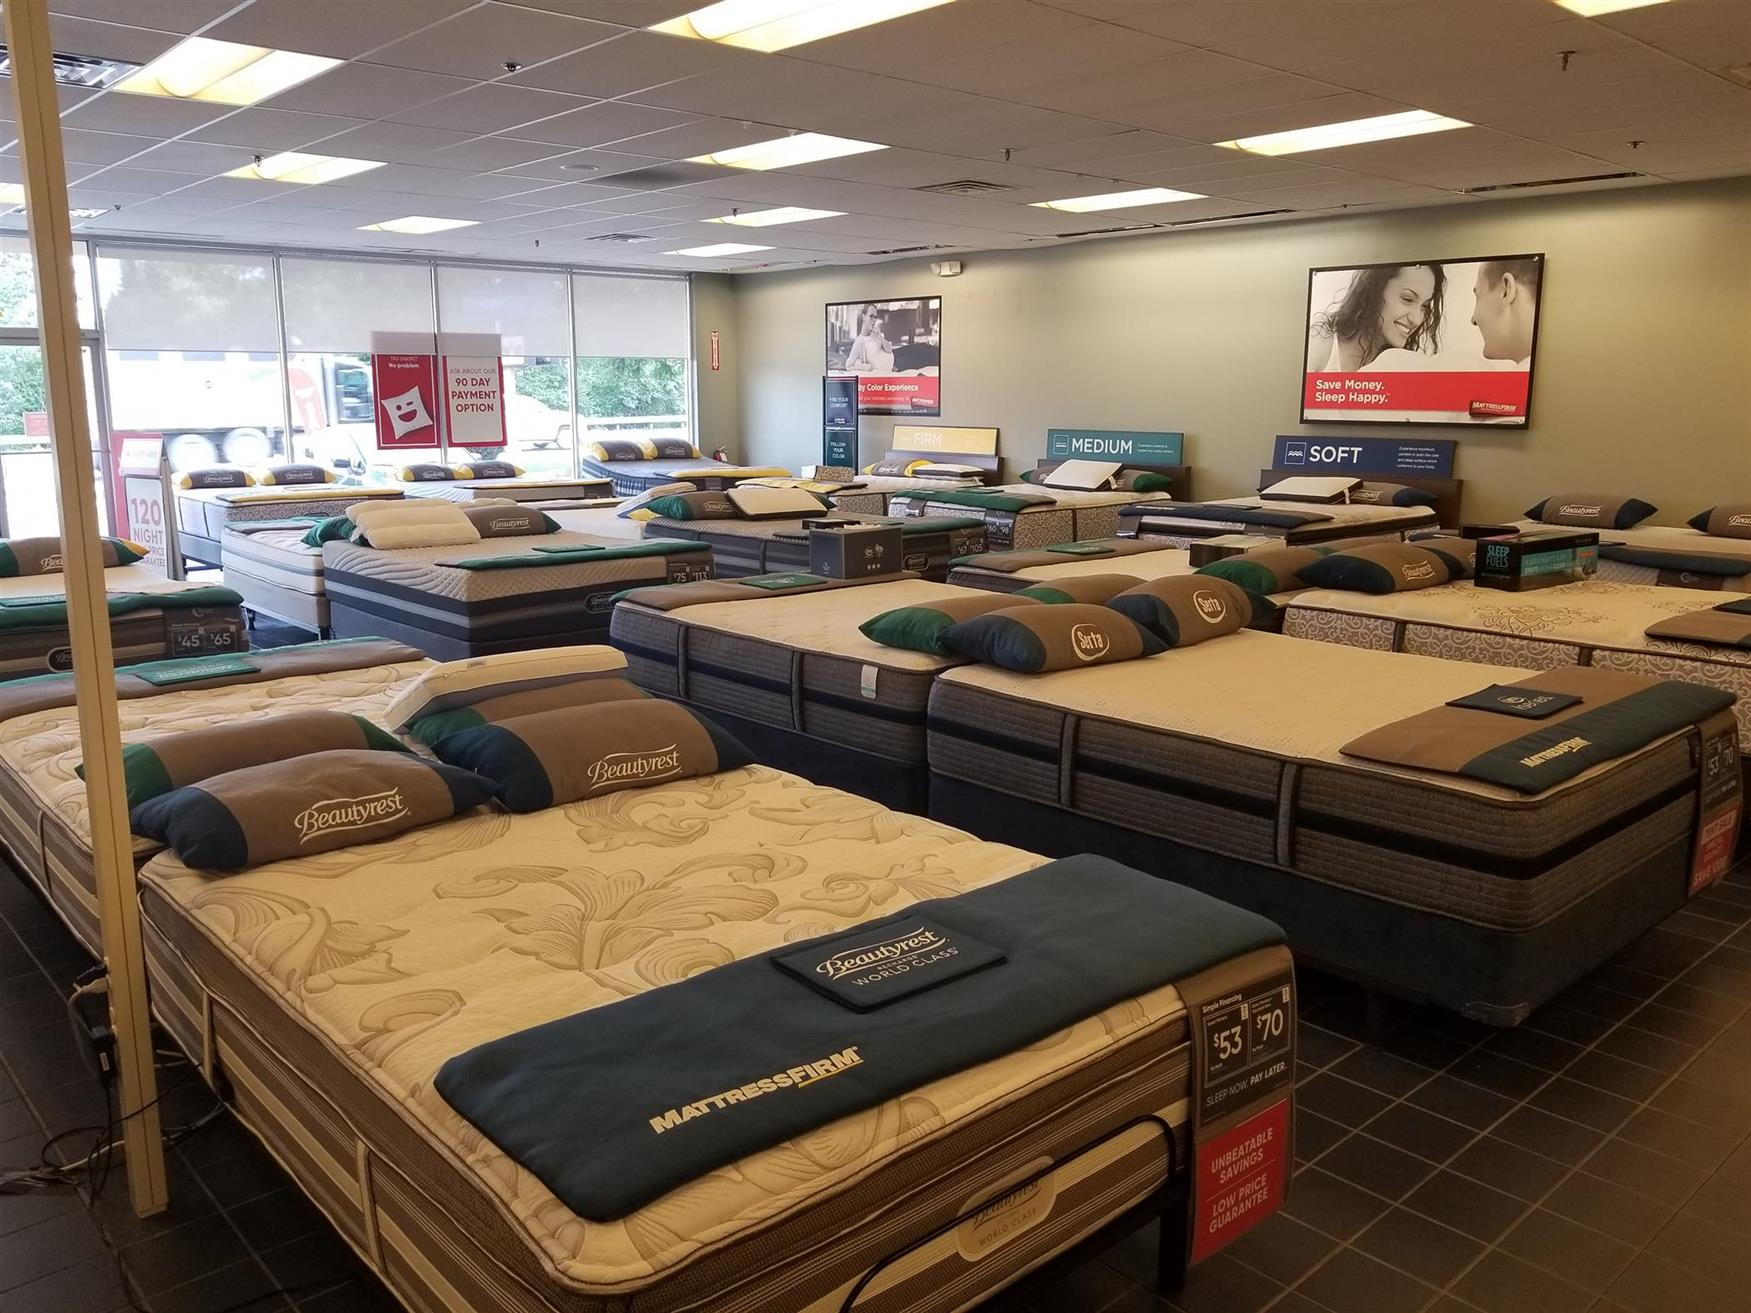 Mattress Firm King Of Prussia Closed Furniture Store King Of